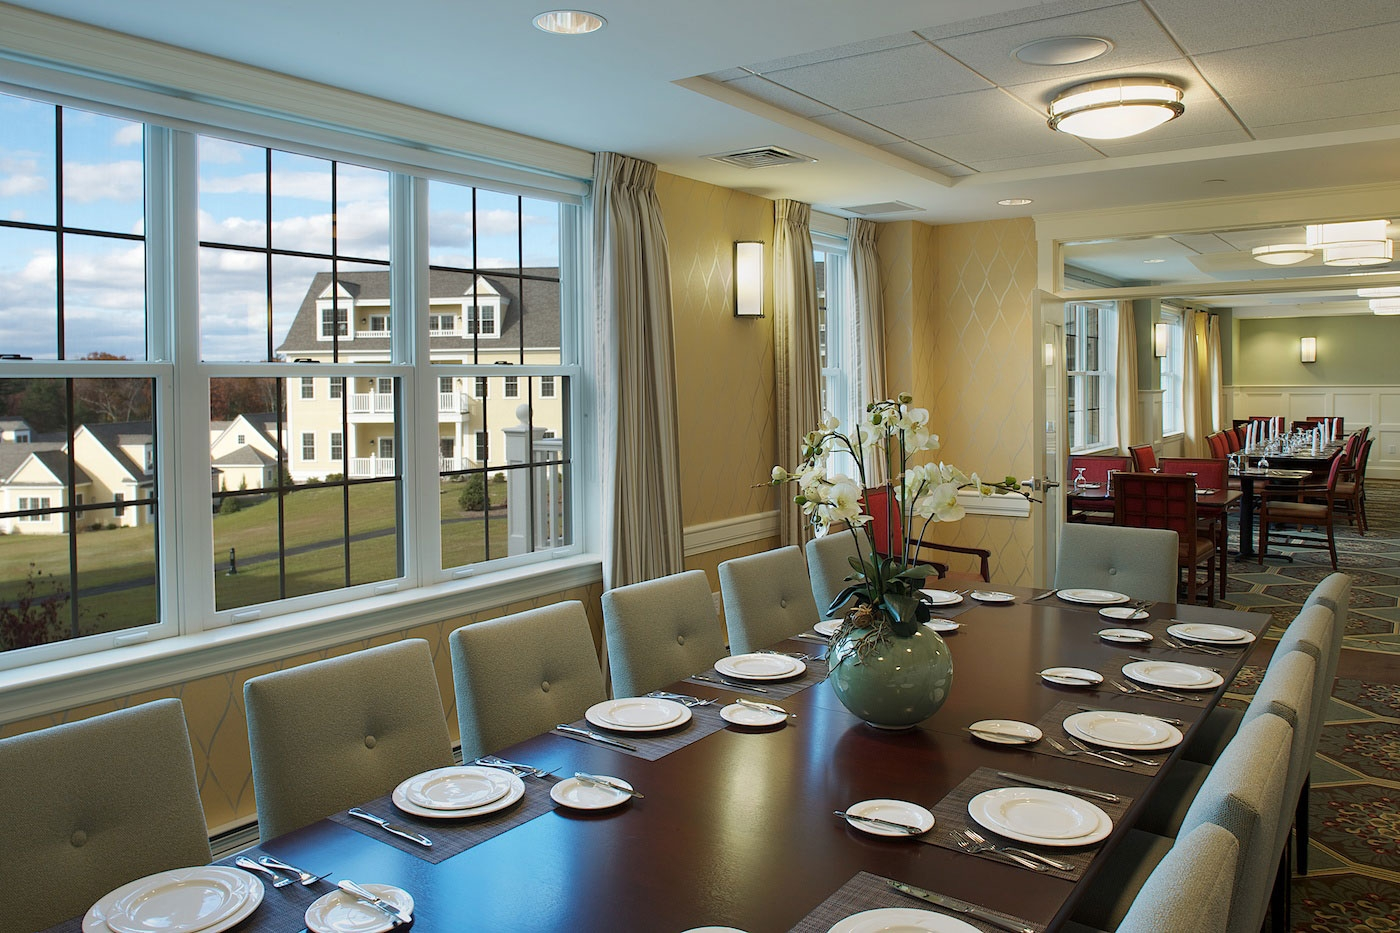 Designers at WDC envisioned this open dining room concept at assisted living community in Lincoln MA